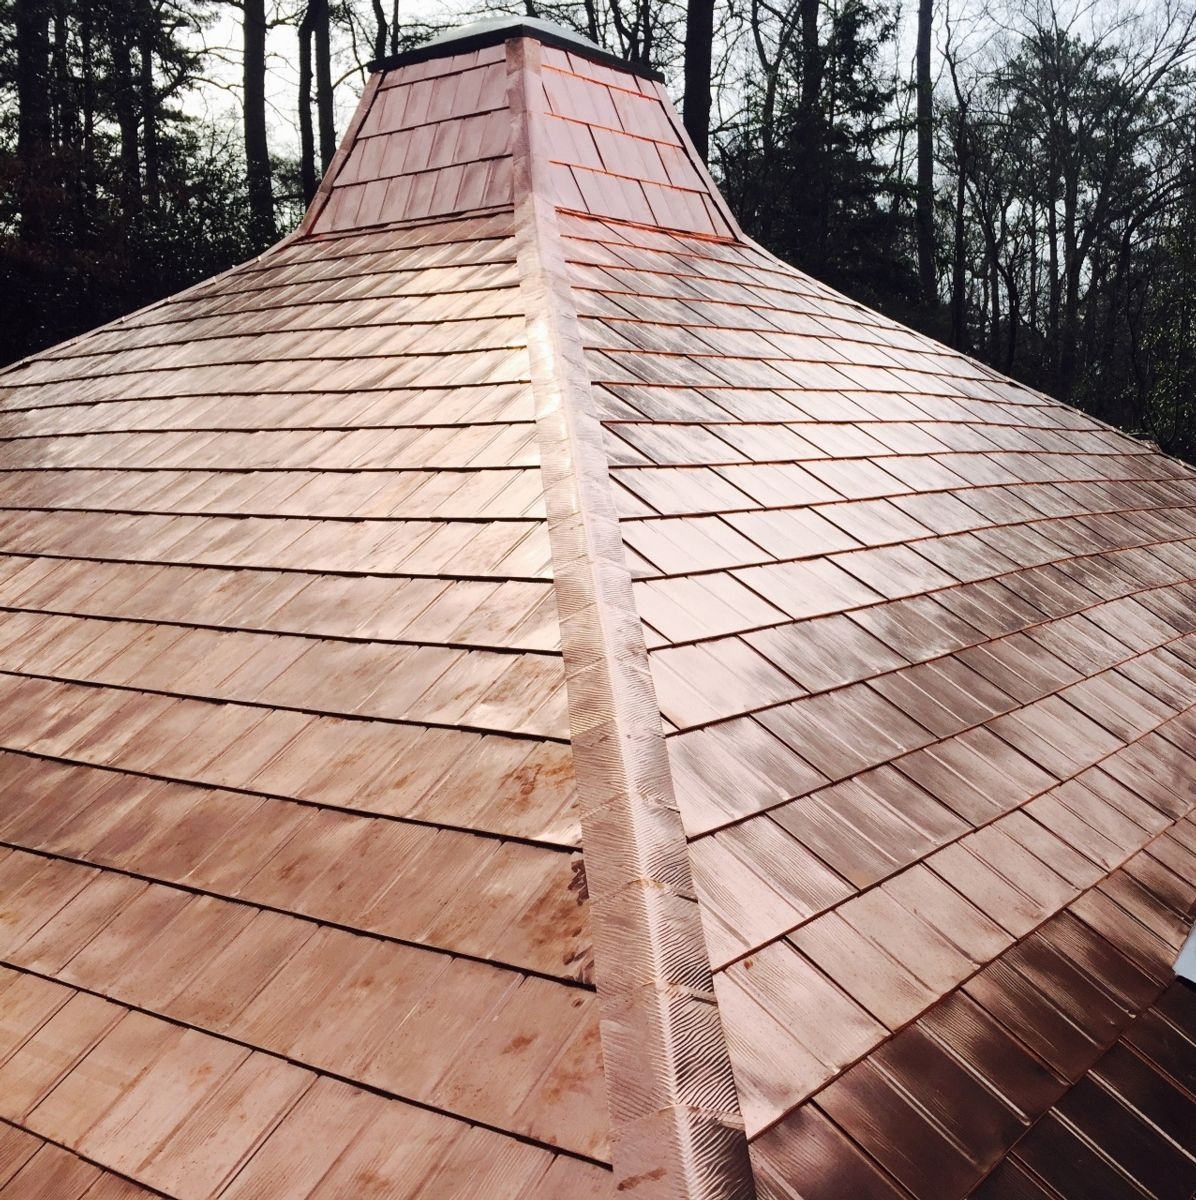 Copper Tile Roof Tile Design Ideas